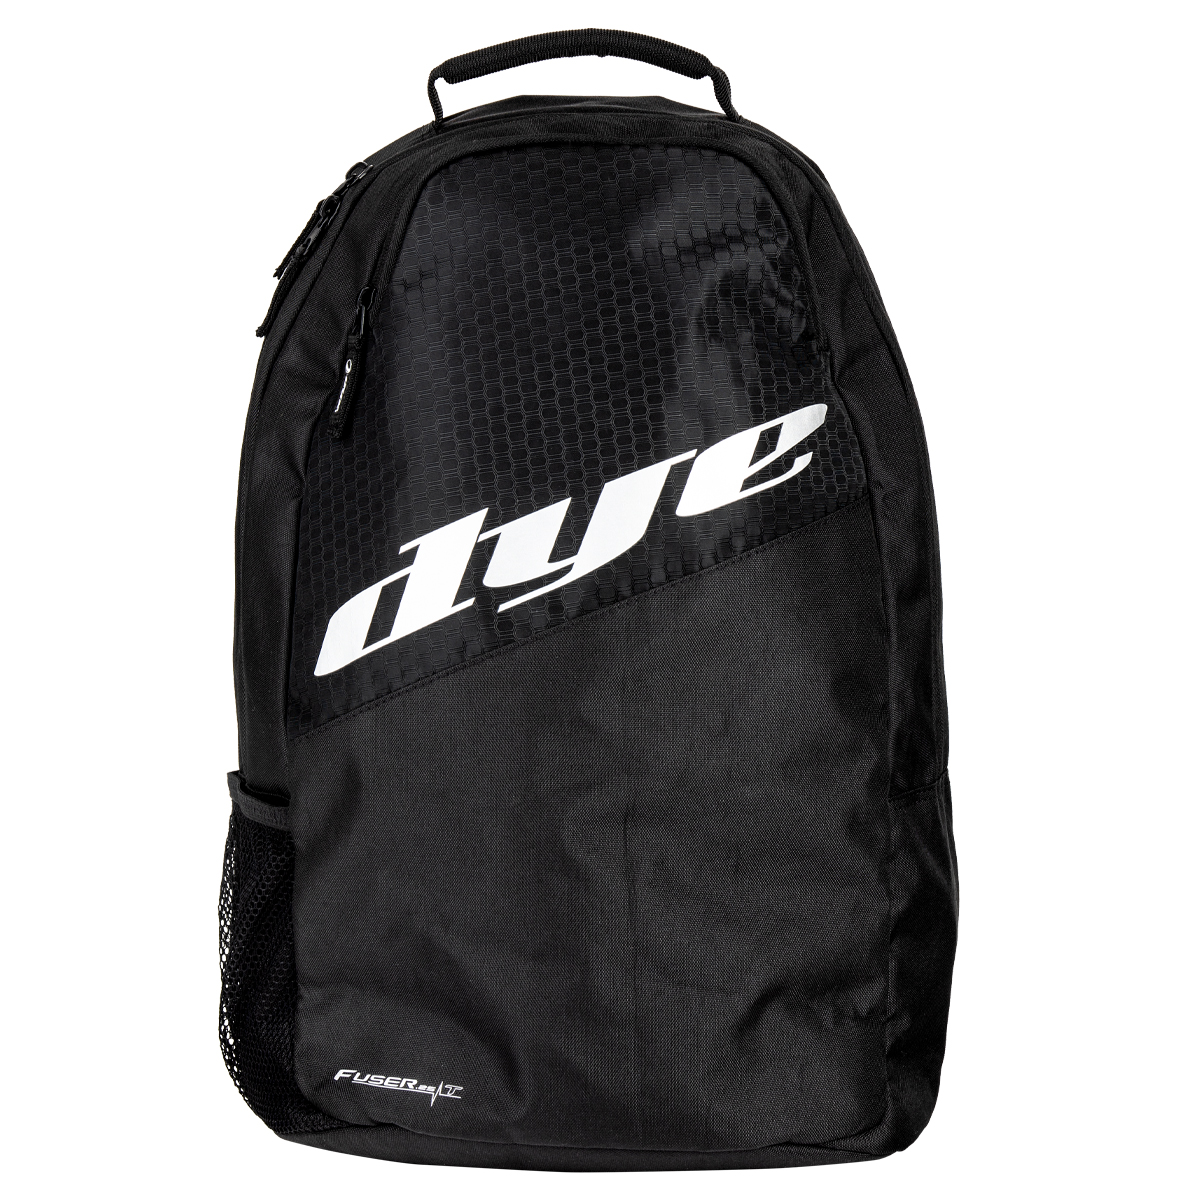 VE2057 Sac à dos Fuser Backpack 25L - VE2057